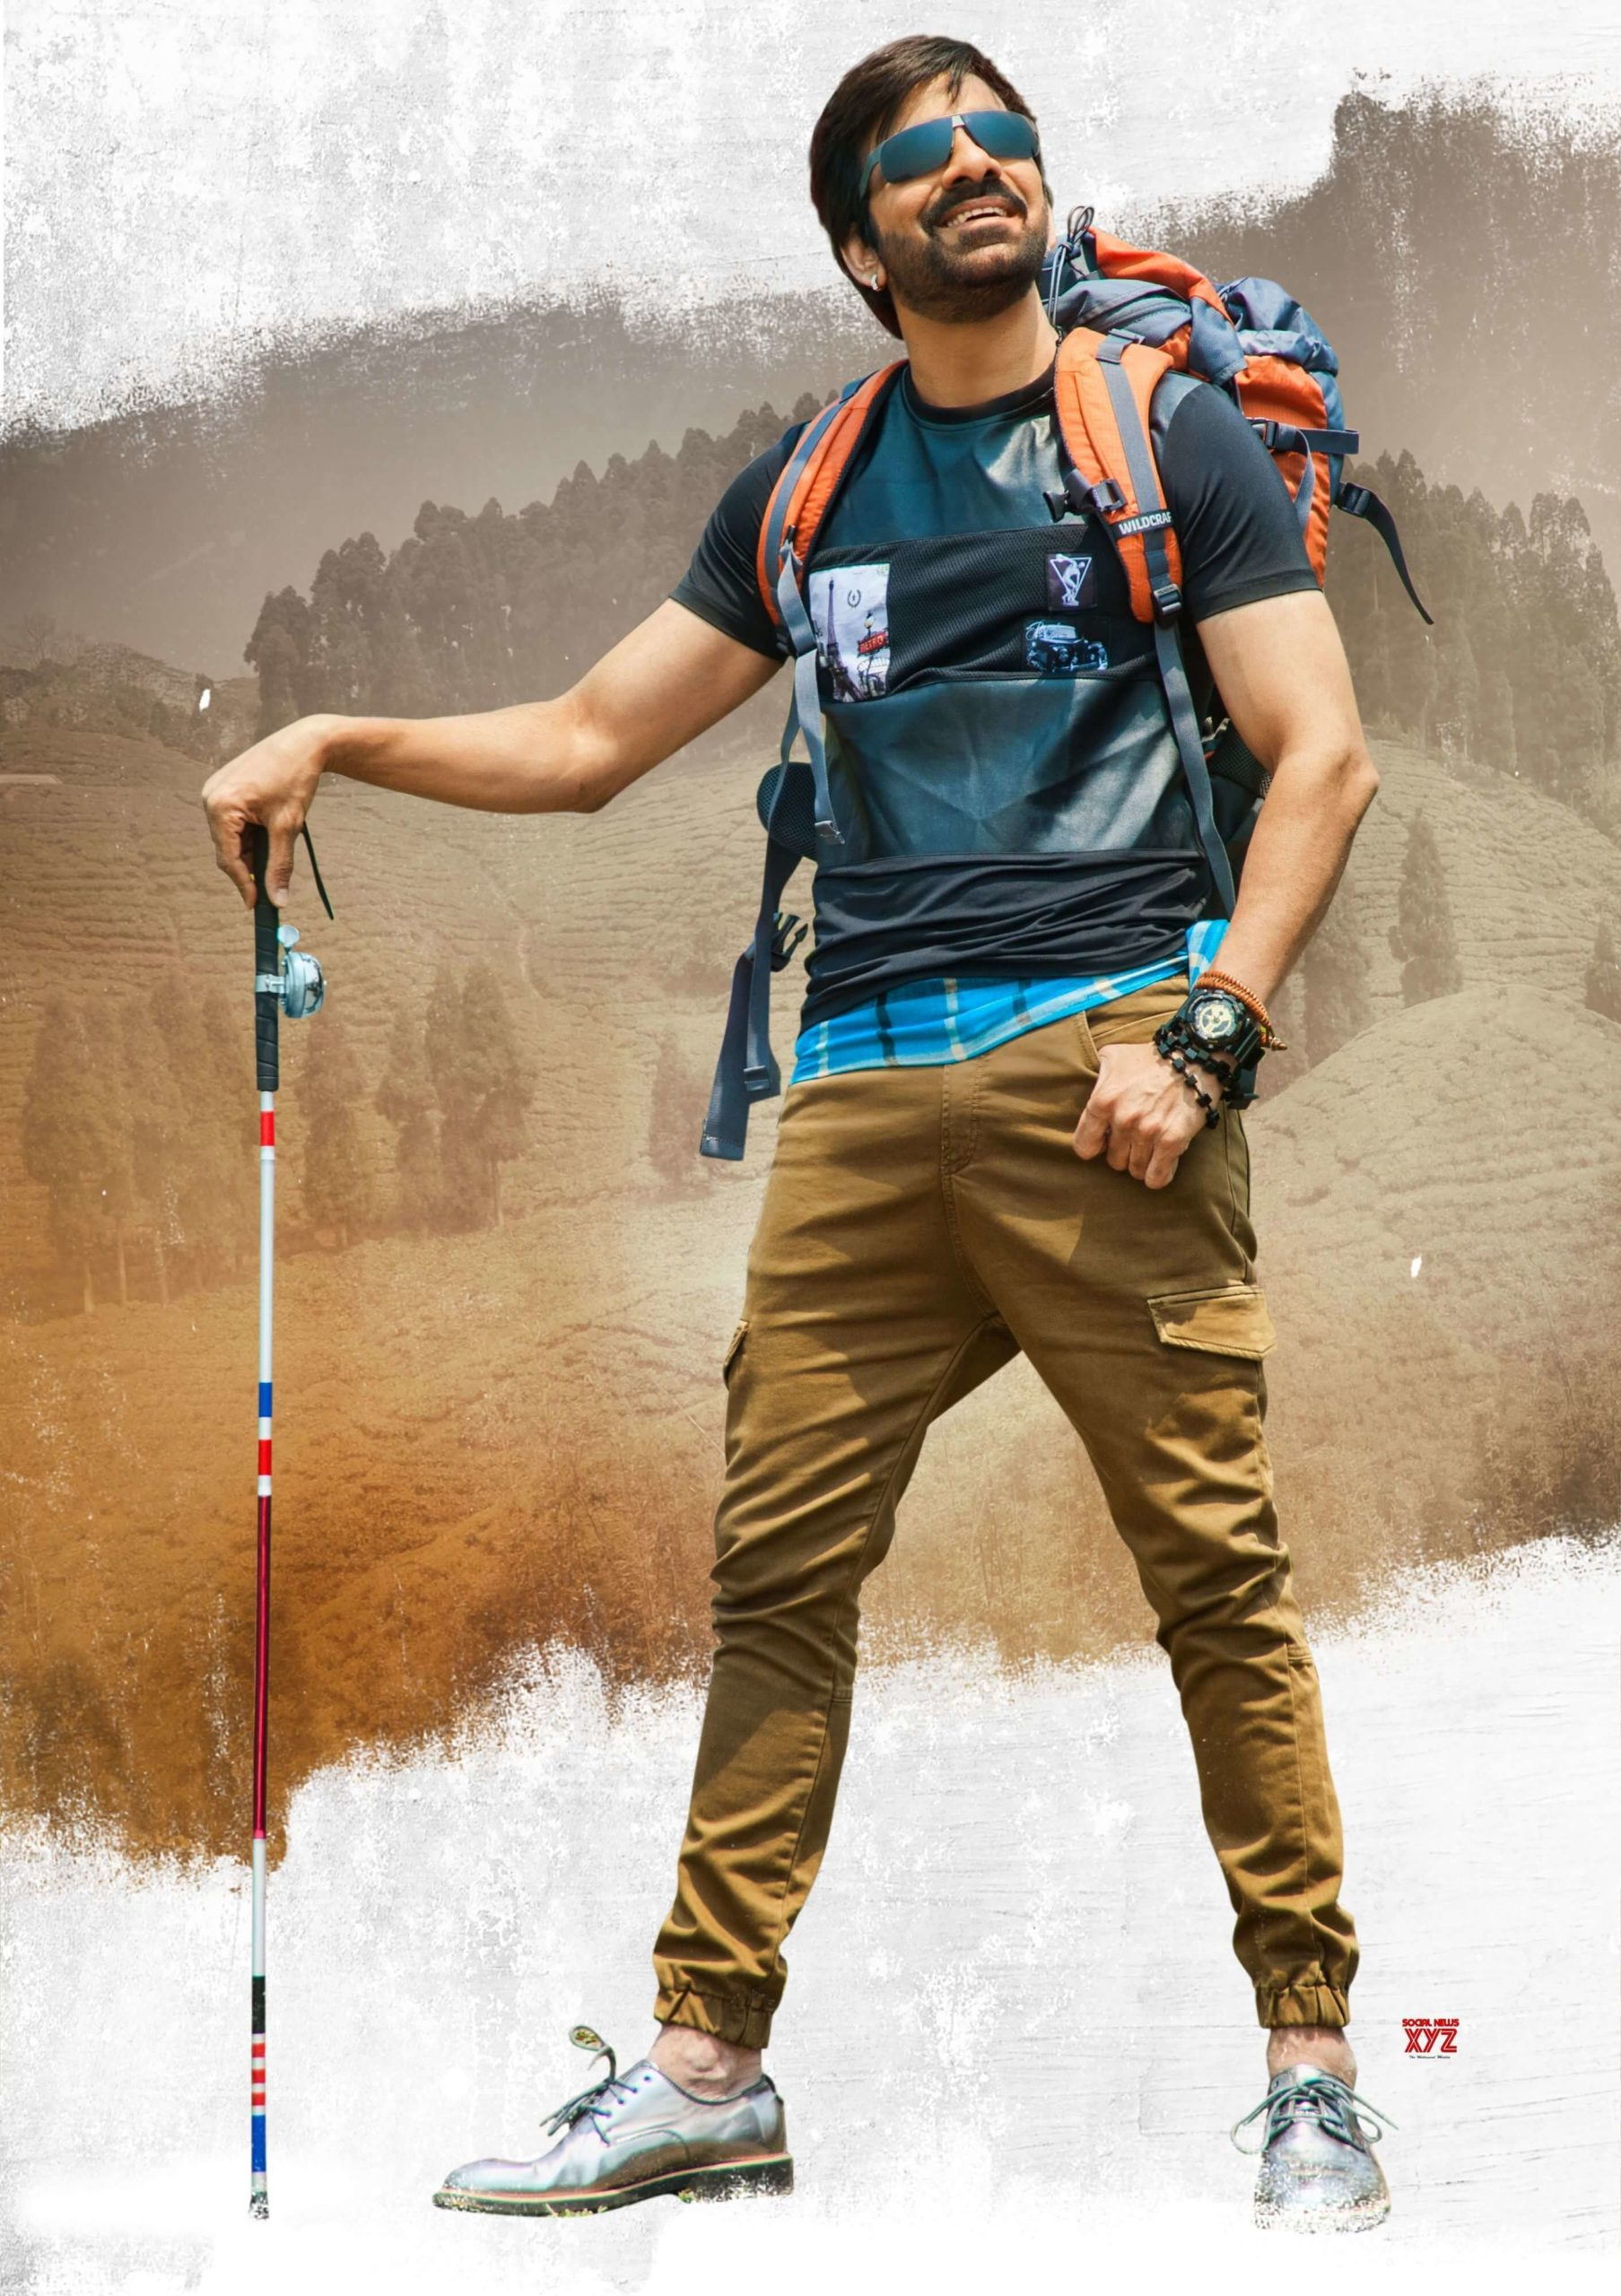 Ravi Teja Movie, Photos(images), Date Of Birth, Family, Brother, Height, Biography, Net Worth, Age, Wife, Details, Education, Instagram, Twitter, Wiki, Imdb, Facebook, Hairstyle, Youtube (19)